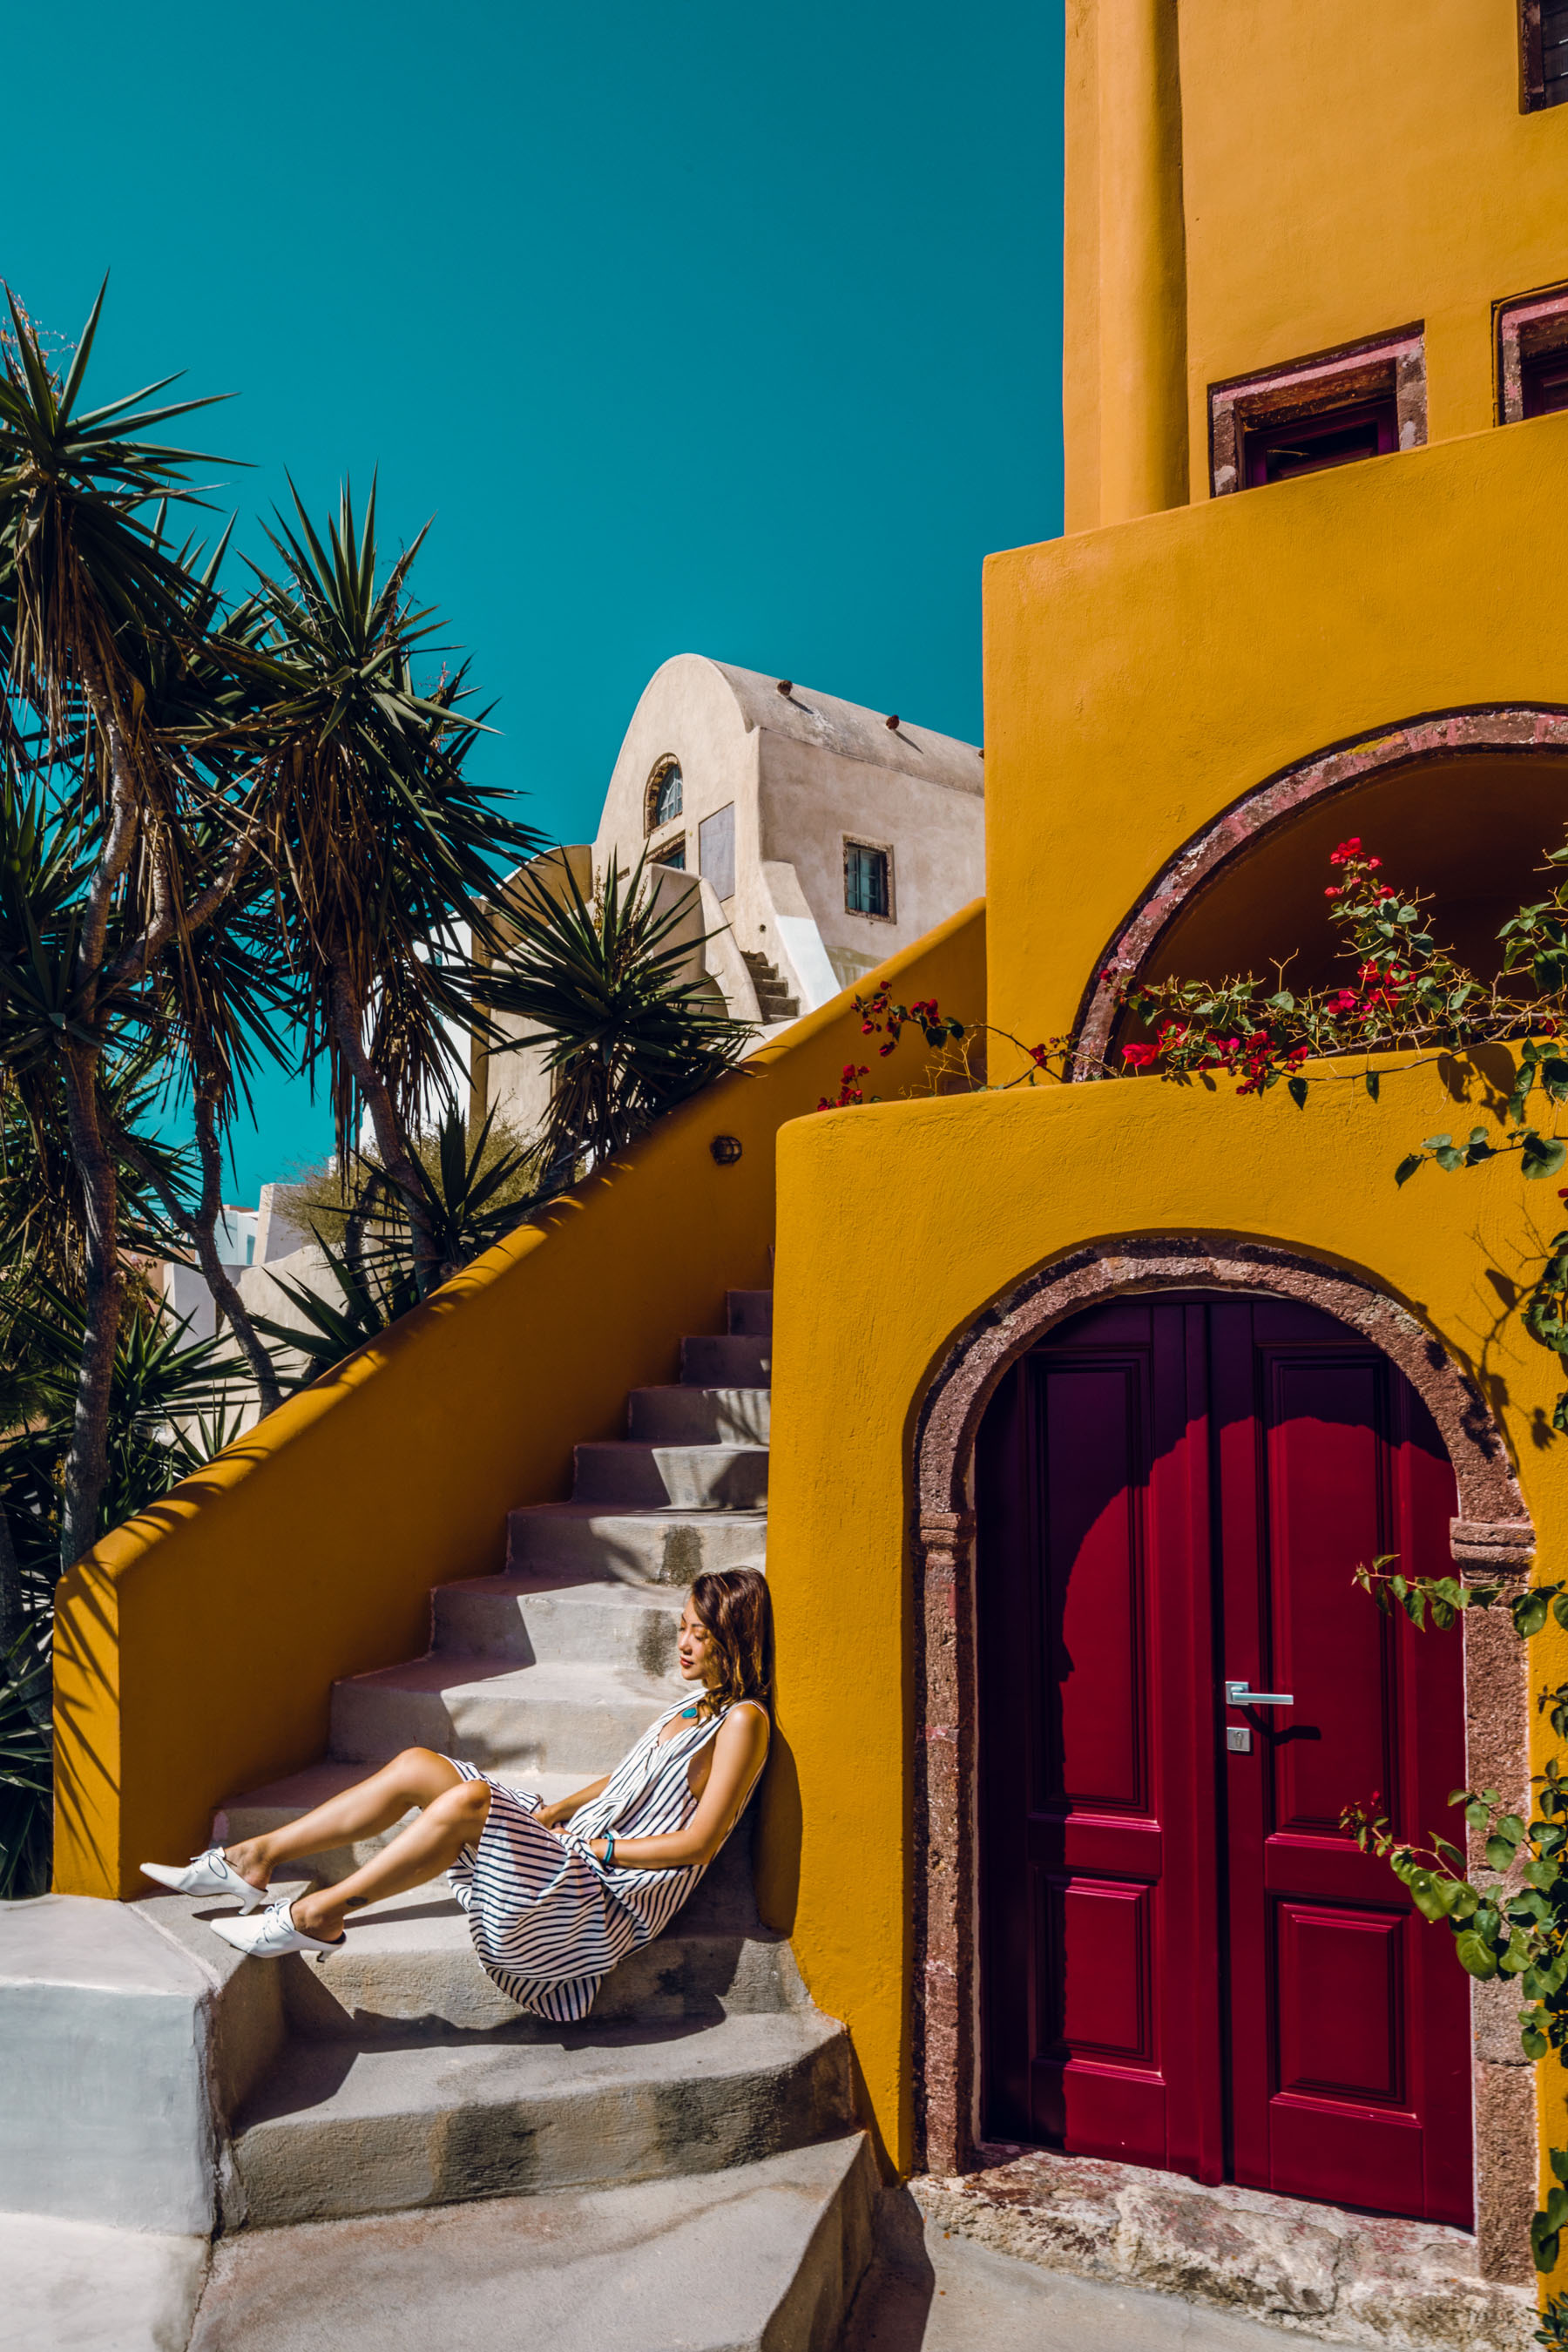 The Ultimate Greece Travel Guide - Santorini & Mykonos // Notjessfashion.com // travel blogger, greece travel tips, mykonos travel tips, santorini travel tips, fashion travel blogger, santorini photos, mykonos photos, santorini travel spots, mykonos travel spots